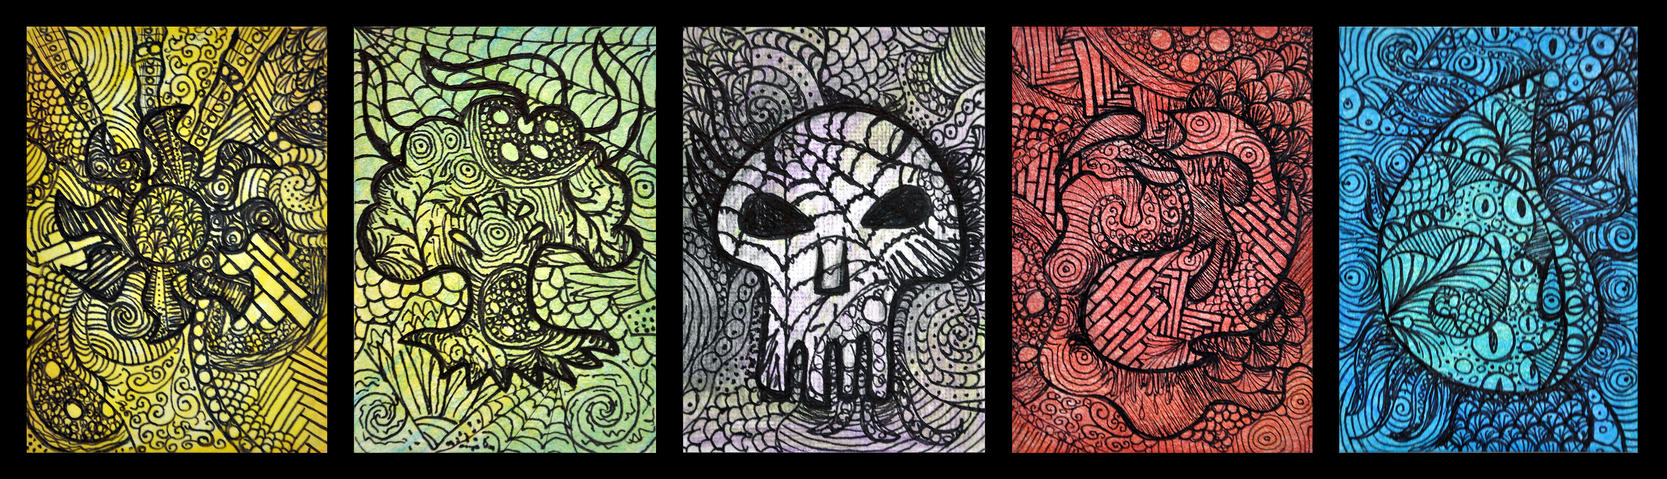 Magic the gathering zentanlge mana symbol atcs by hell0z0mbie on